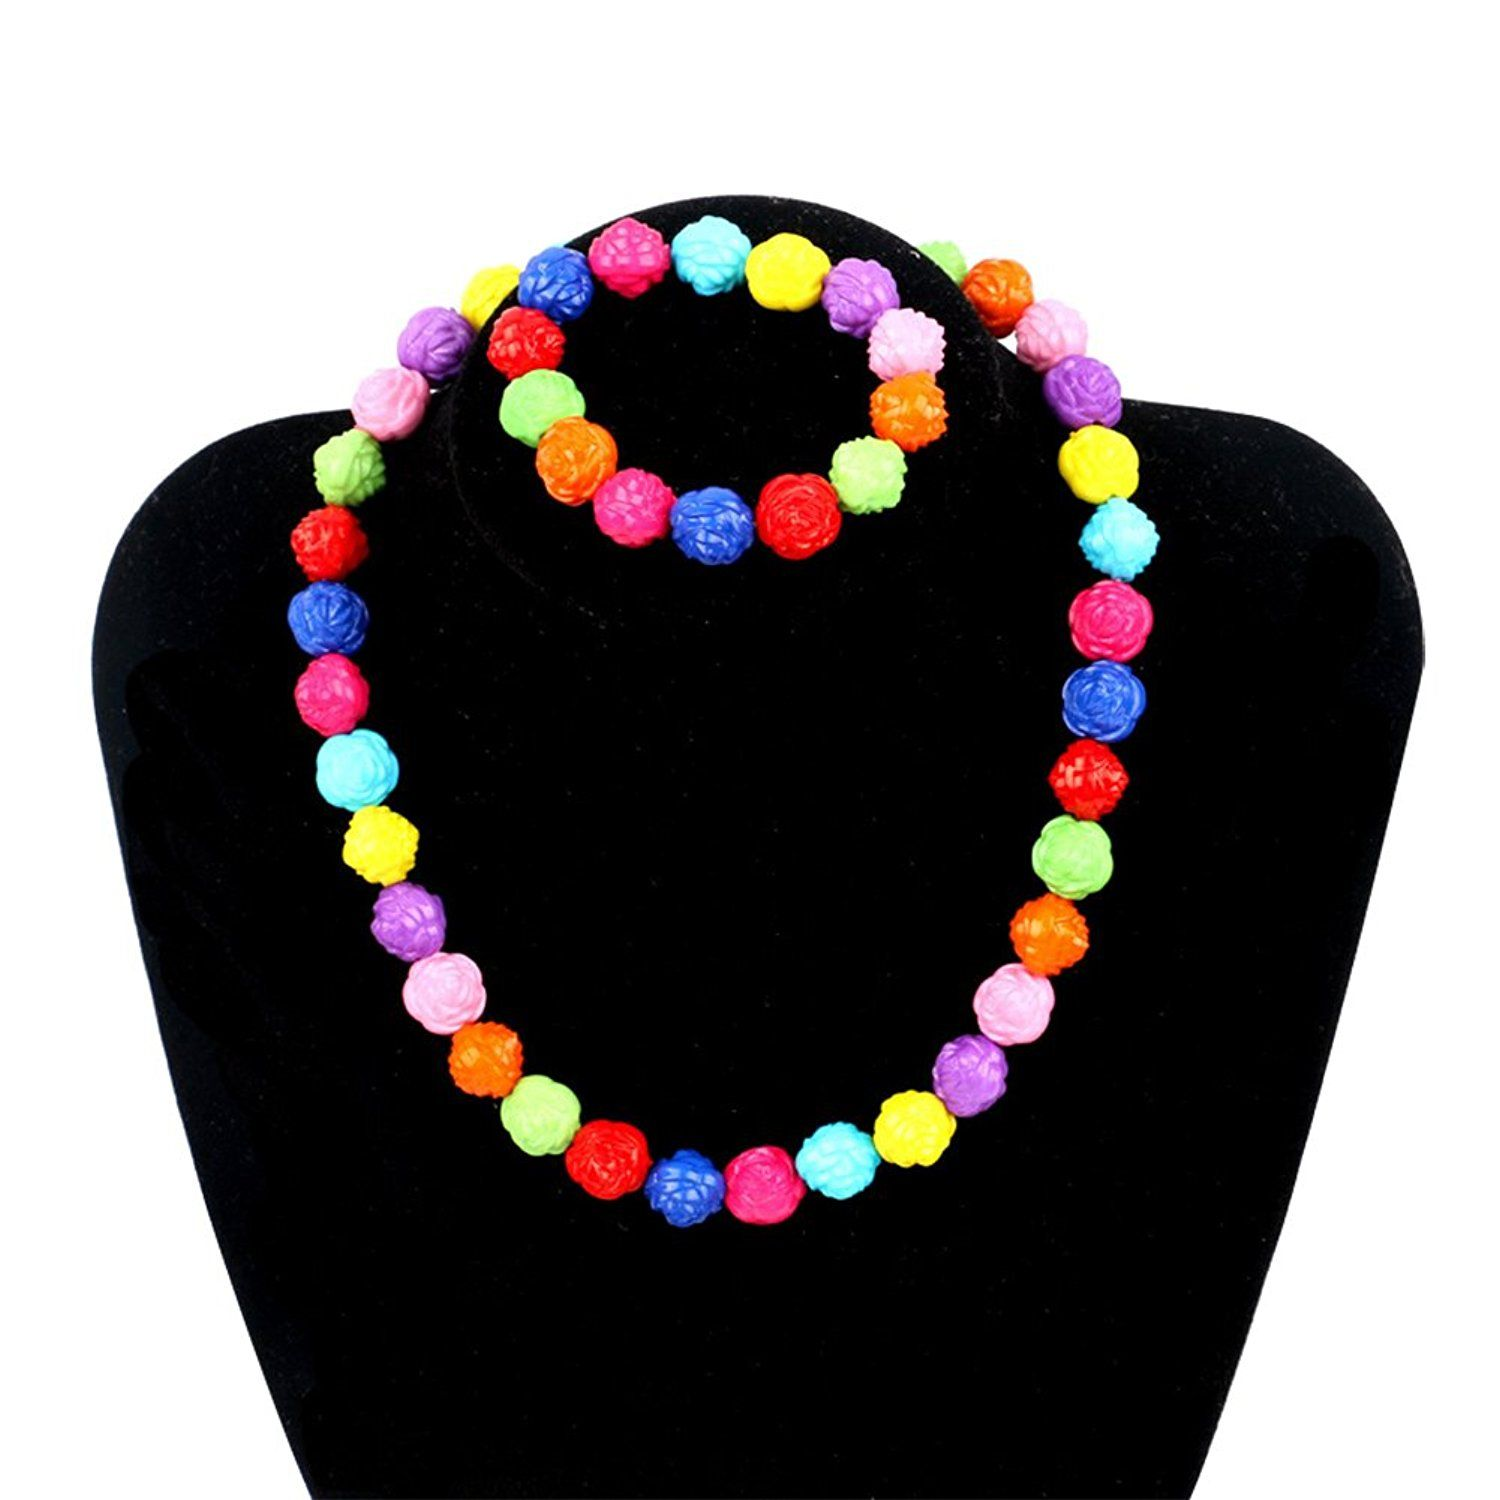 Kids Jewelry Rose Flower Necklace bracelet Jewelry Set Fashion Jewelry For Little Girls >>> For more information, visit image link.